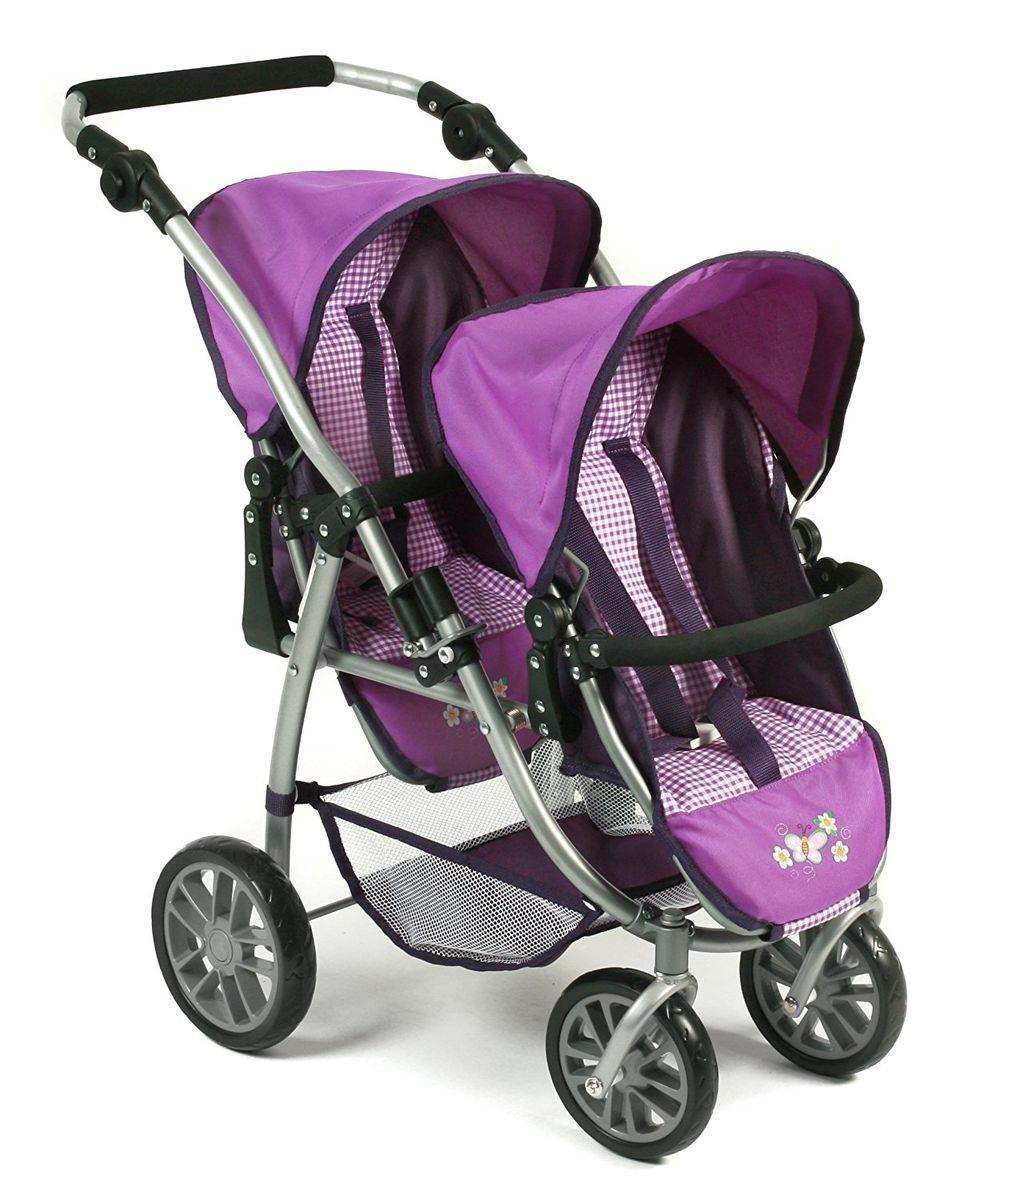 Bayer Chic Tandembuggy VARIO, Purple Checker